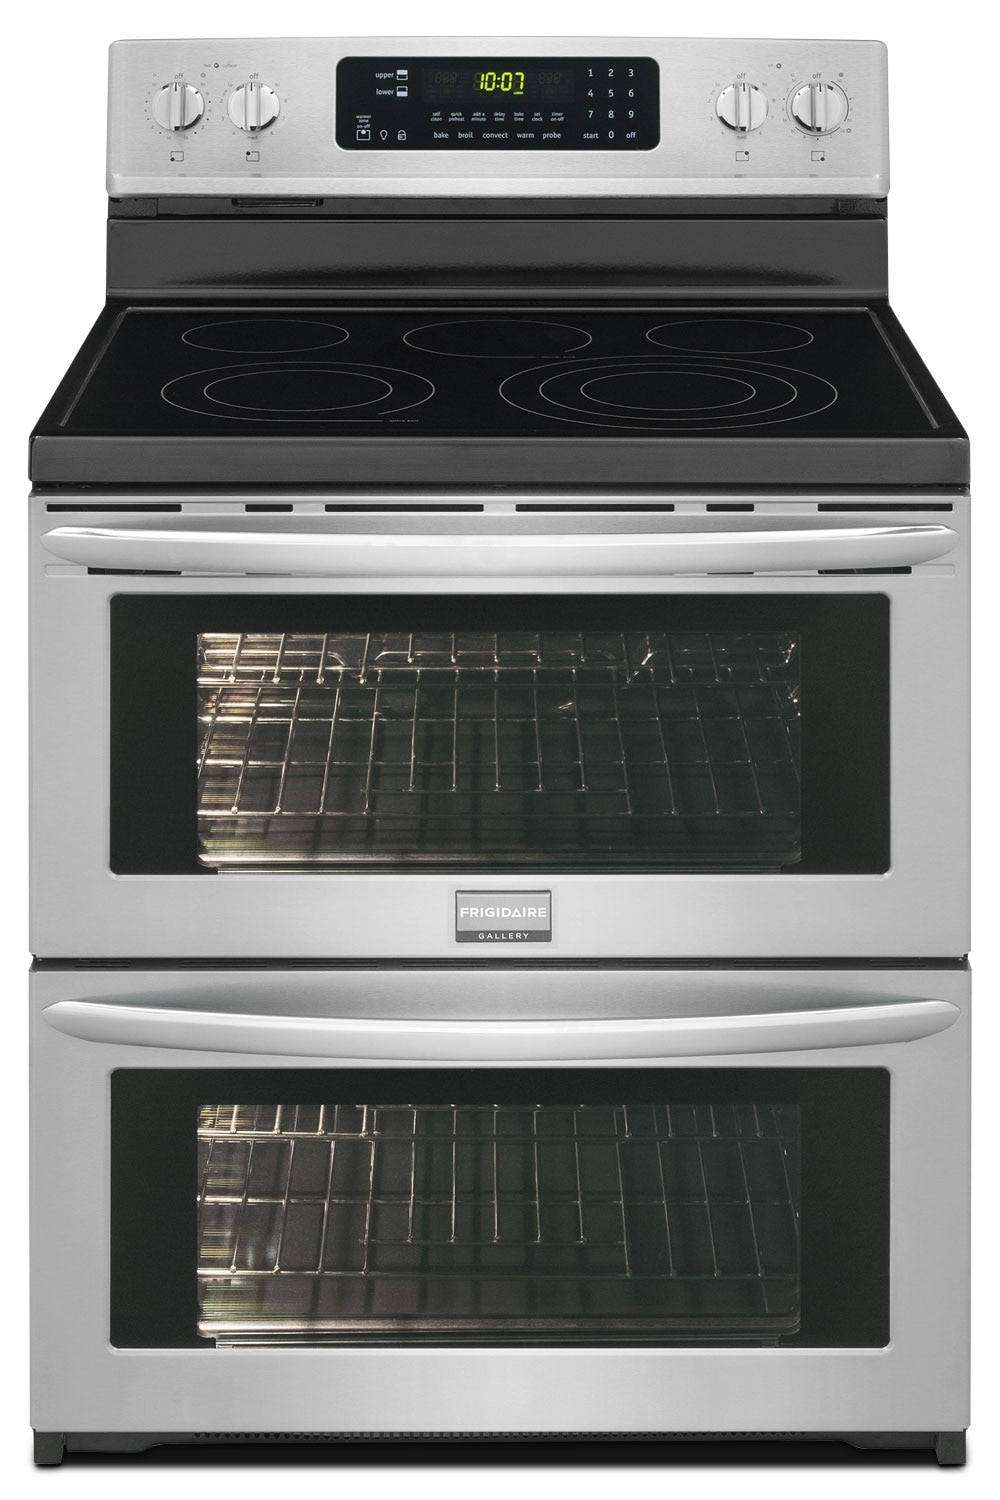 Cooking Products - Frigidaire 7.2 Cu. Ft. Freestanding Electric Double-Oven Range – Stainless Steel